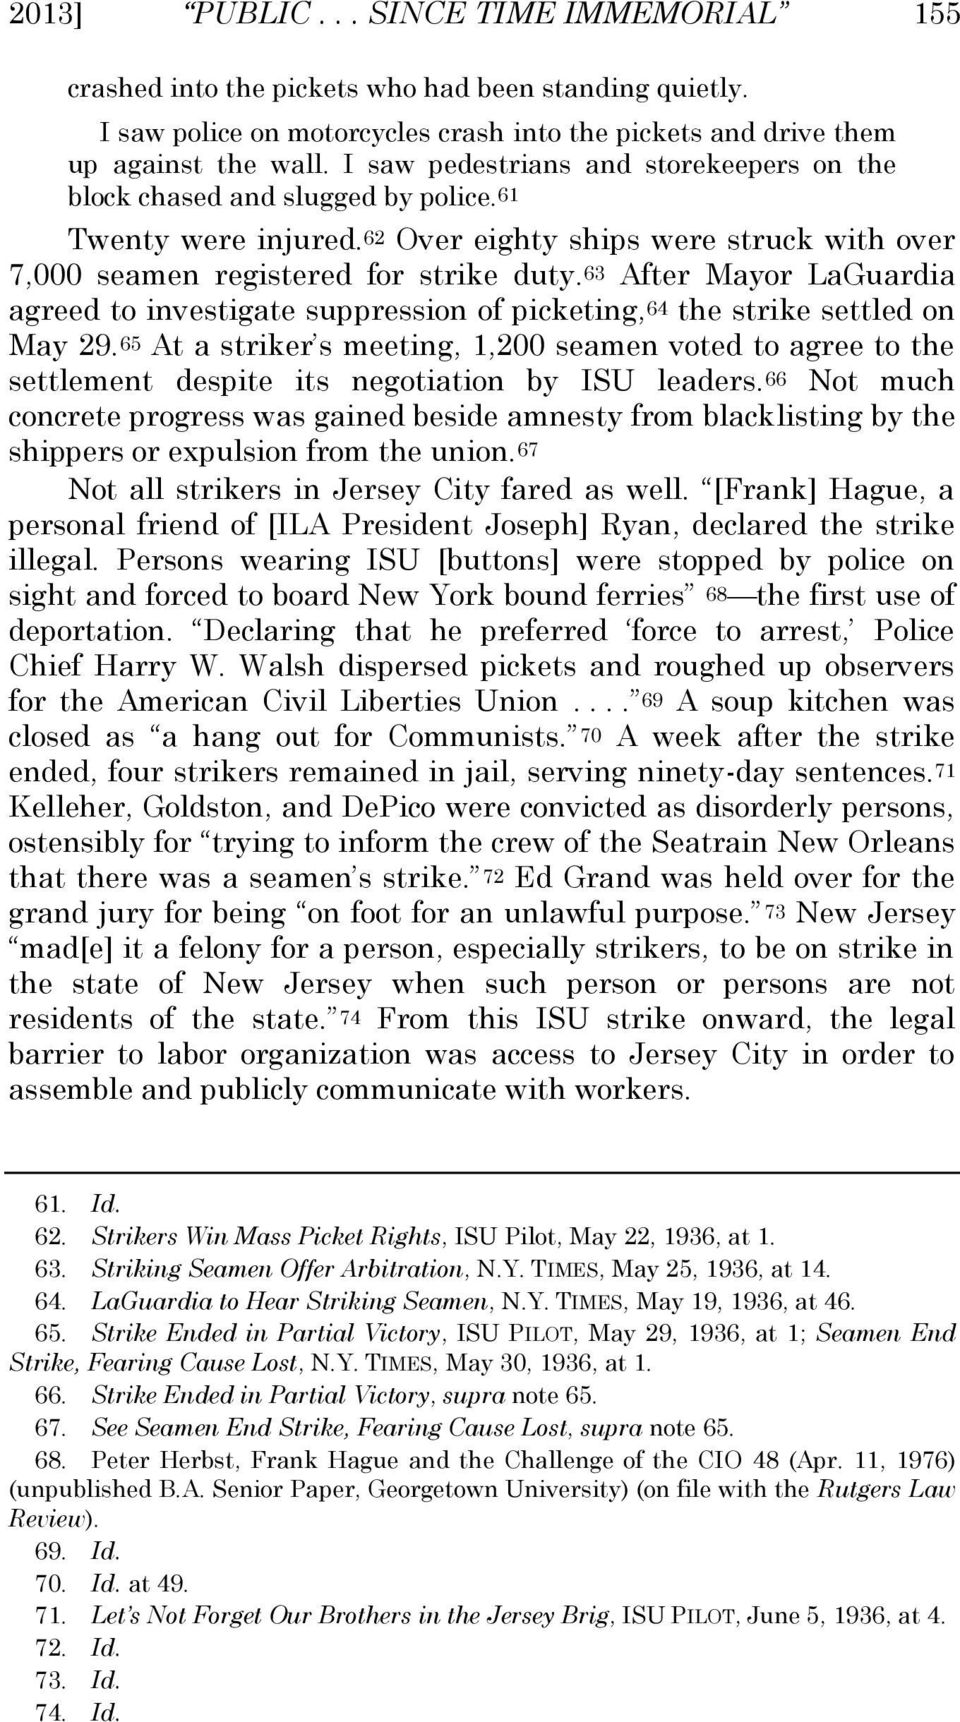 63 After Mayor LaGuardia agreed to investigate suppression of picketing,64 the strike settled on May 29.